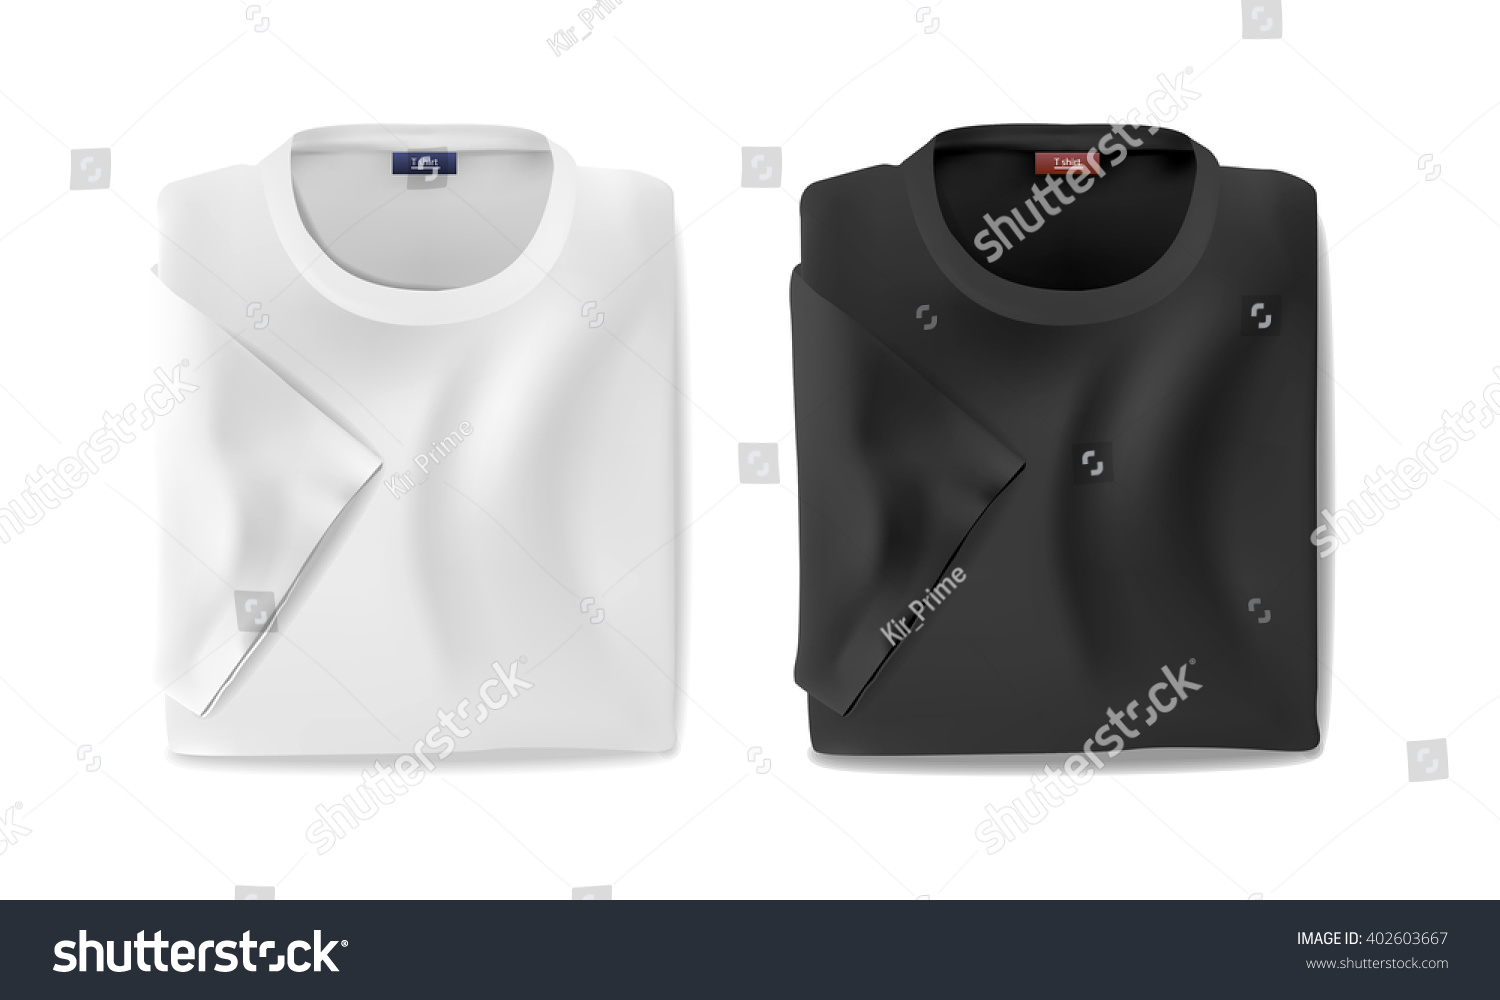 Black t shirt vector - Folded Black And White T Shirt With A Sleeves Template Vector Eps10 Illustration